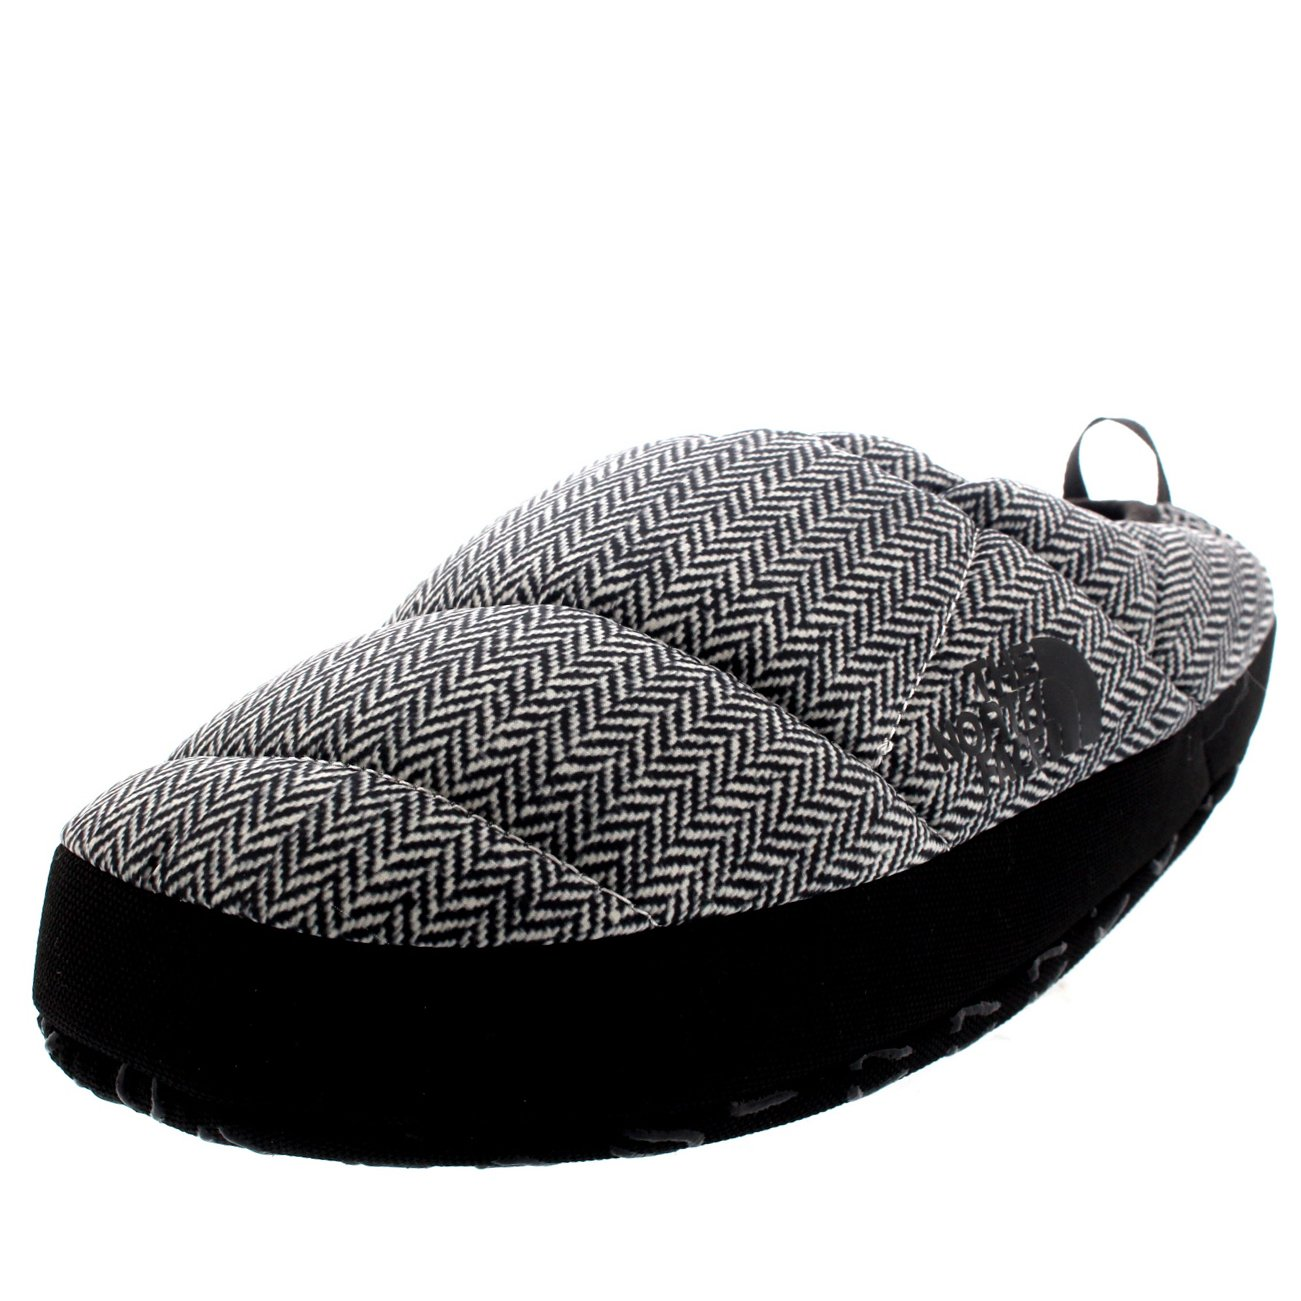 The North Face Mens NSE Tent Mule III Thermal Warm Winter Mule Slippers - Black/White - 8-9.5 by The North Face (Image #1)